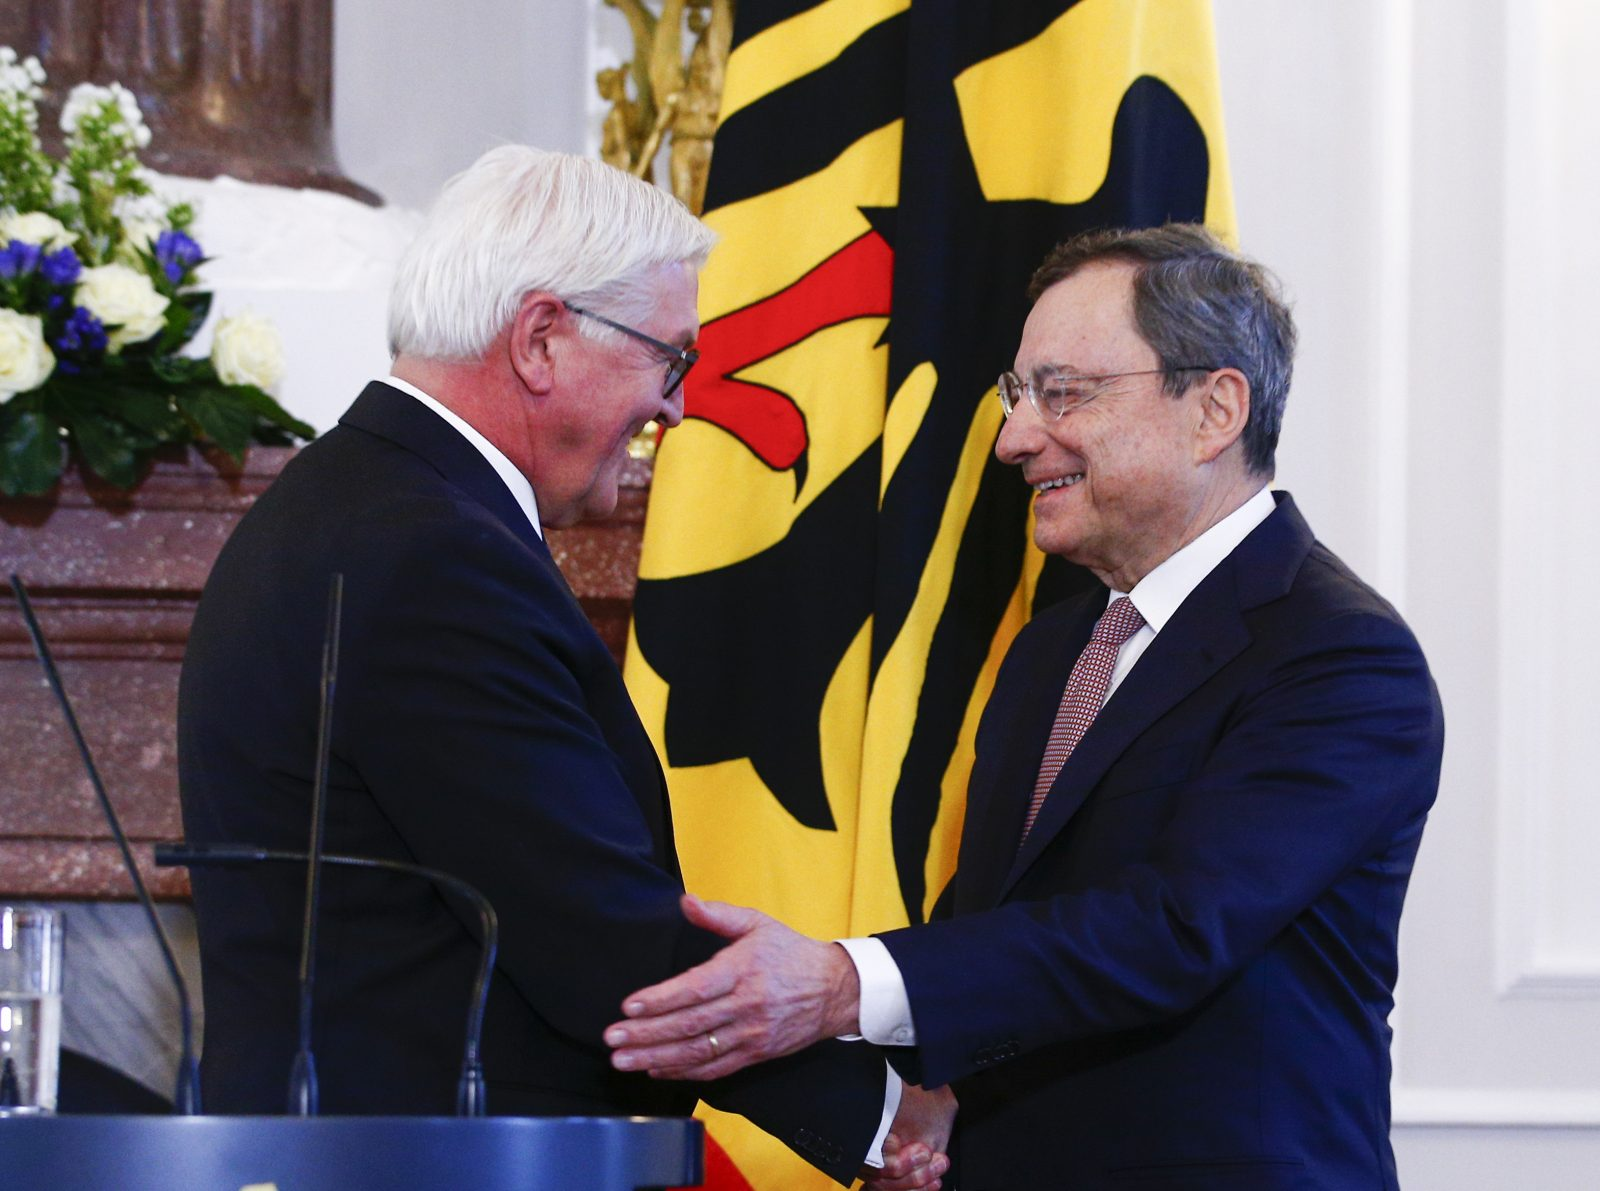 German President Steinmeier awards Mario Draghi with the Federal Cross of Merit